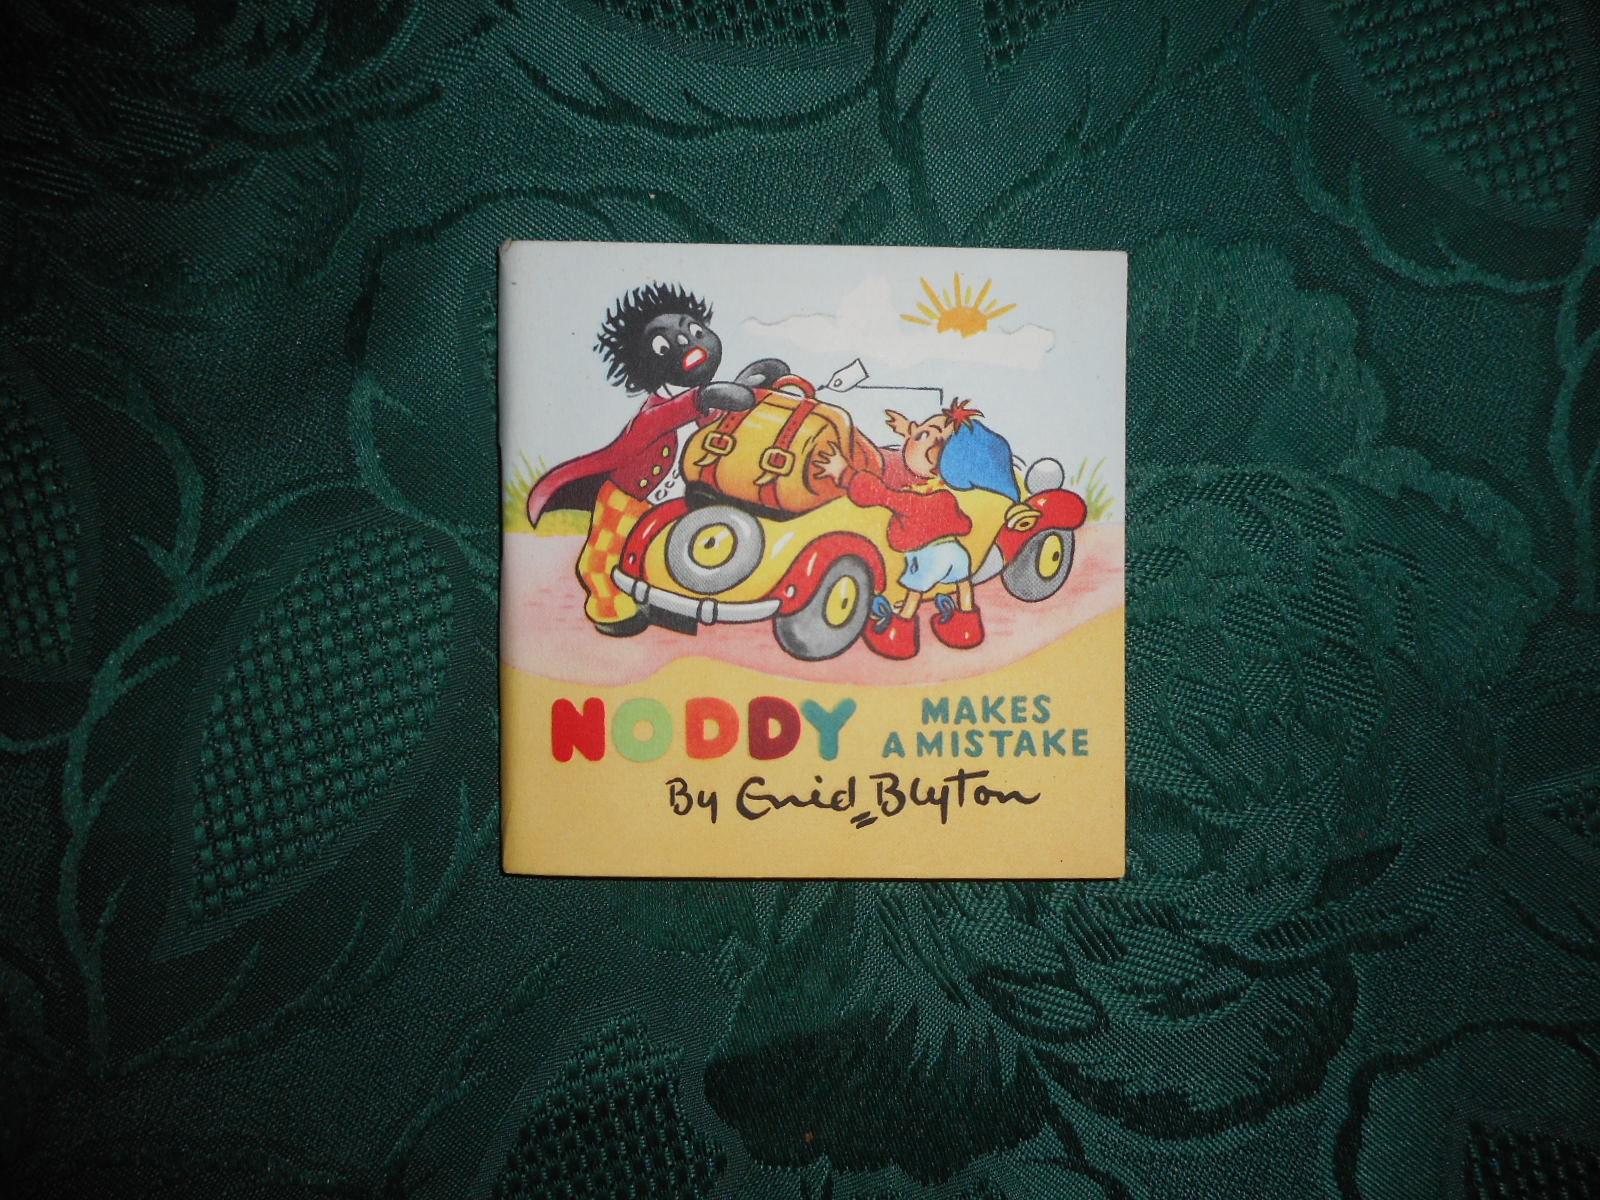 Image for Noddy Makes a Mistake (No. 3 from 'Noddy's Garage of Books').